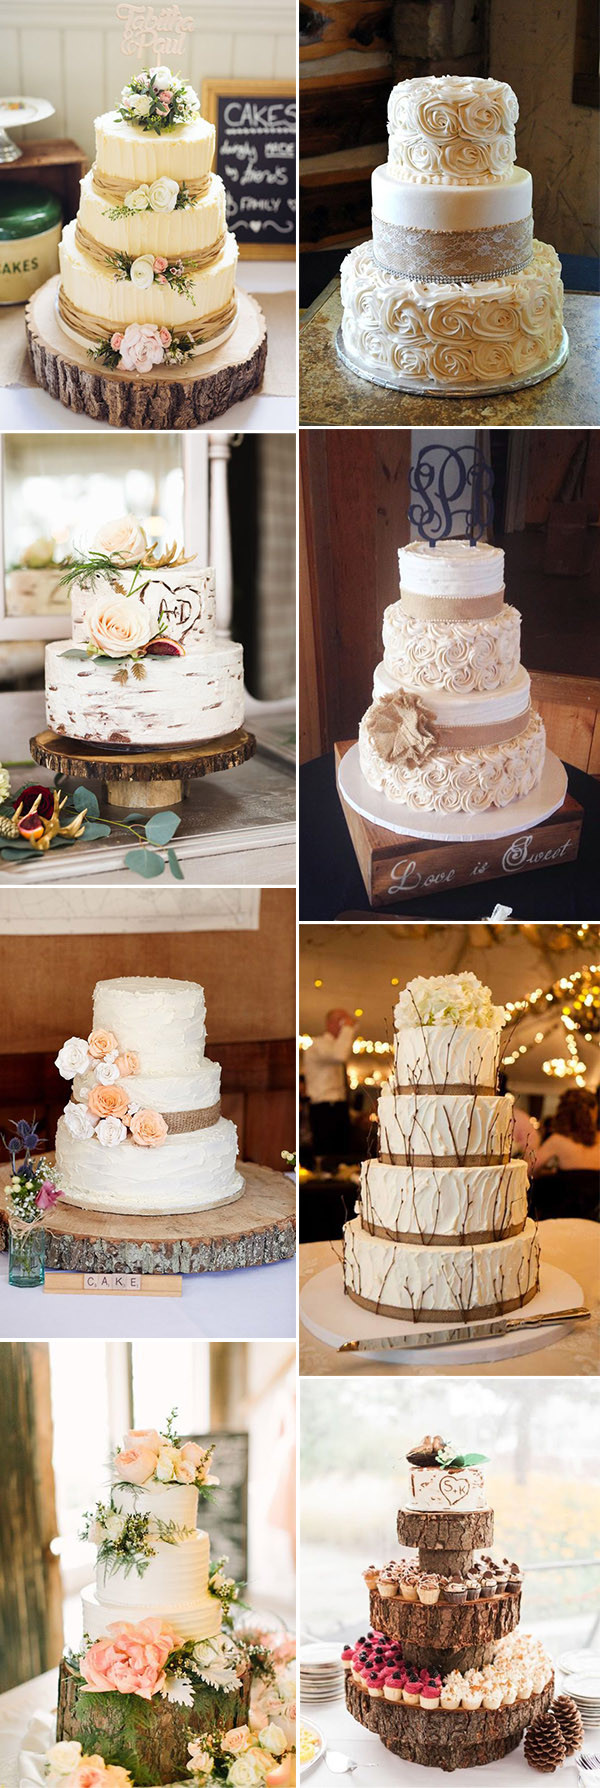 Rustic Wedding Cakes Ideas  50 Steal Worthy Wedding Cake Ideas For Your Special Day